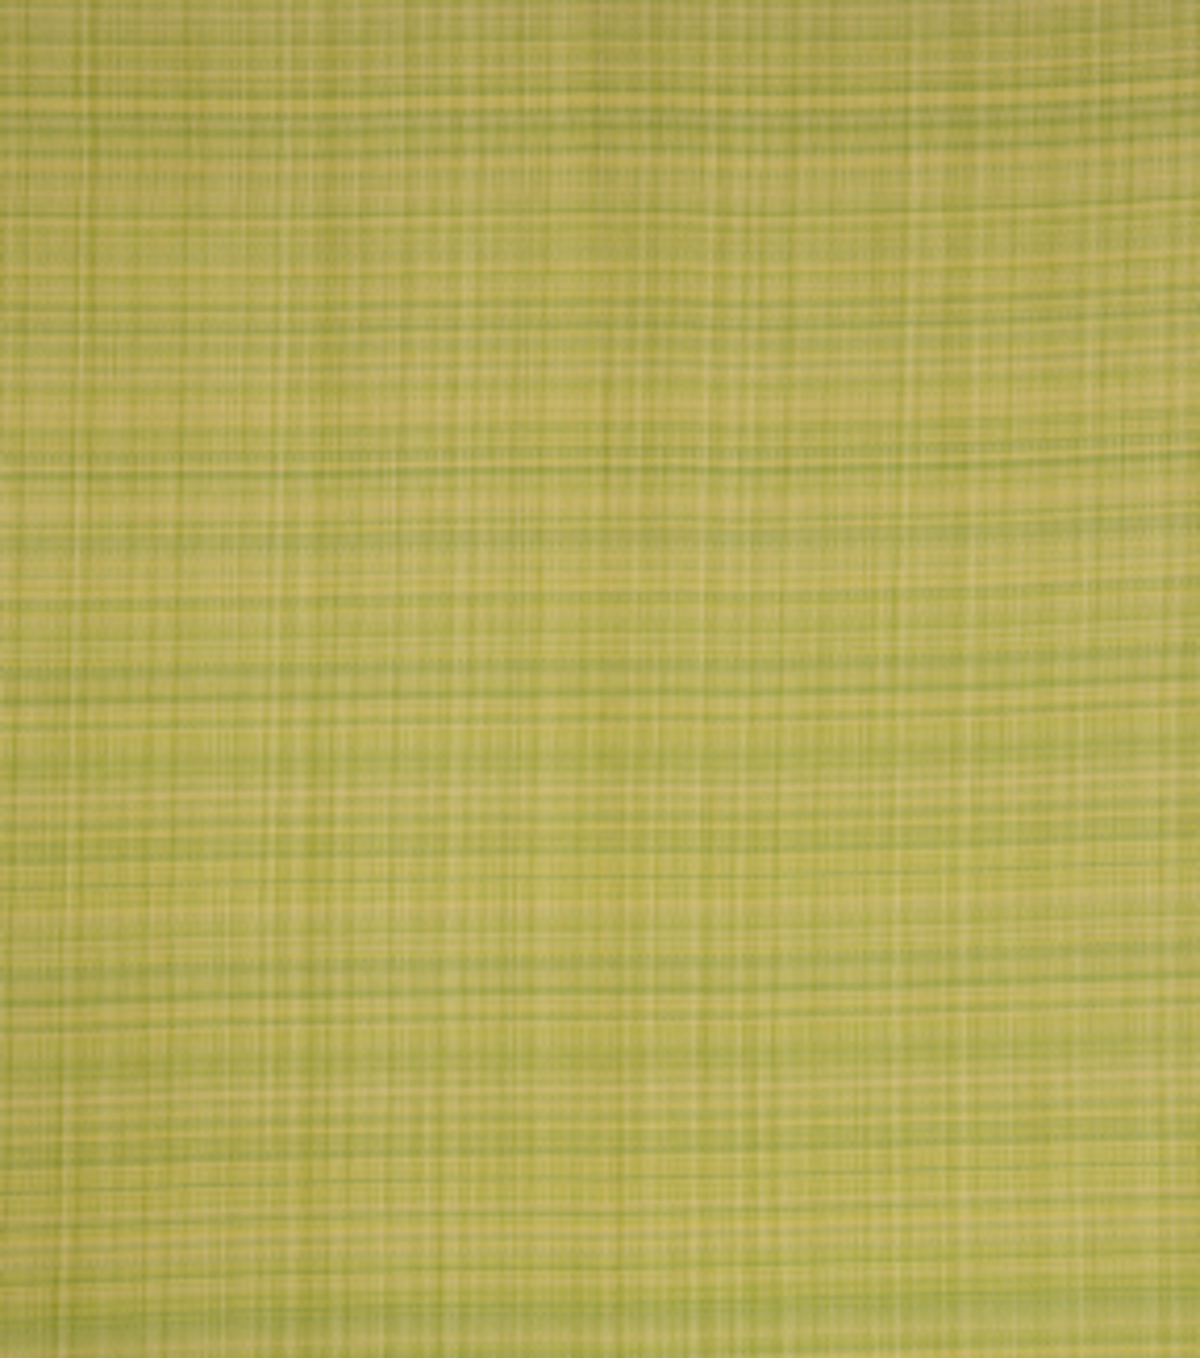 Home Decor 8\u0022x8\u0022 Fabric Swatch-Bella Dura Cantelope Lime Splash